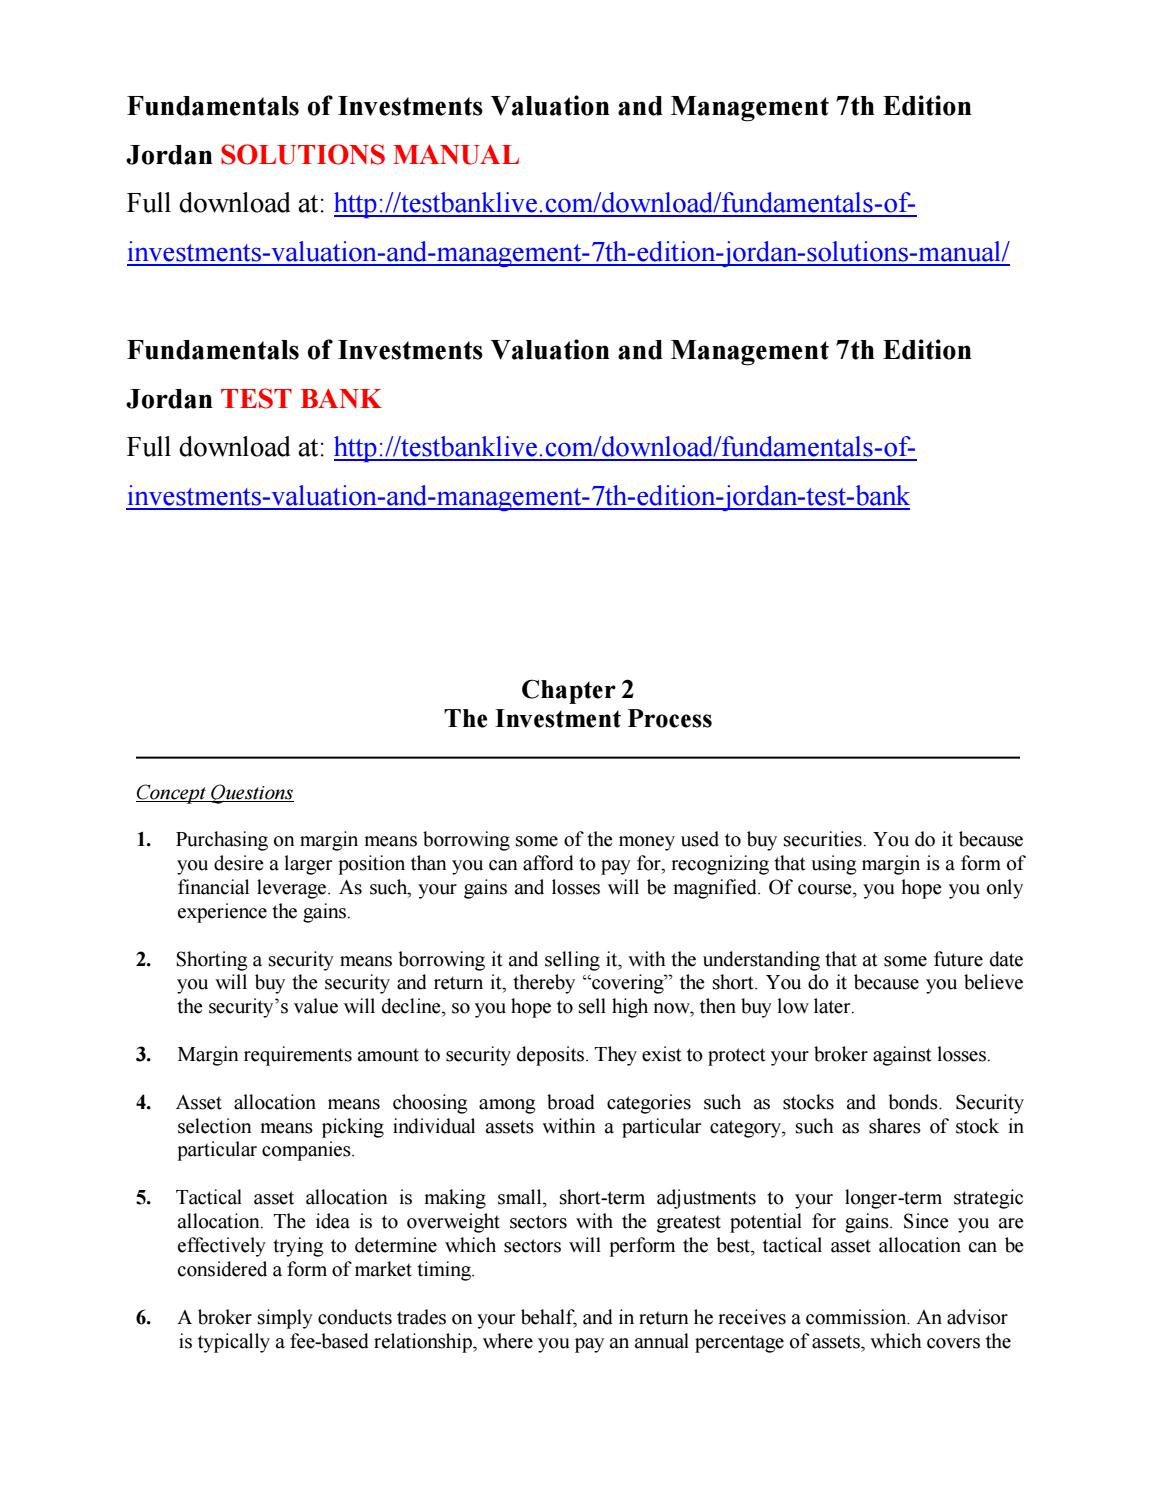 Fundamentals of investments valuation and management 7th edition jordan solutions  manual by glubya - issuu